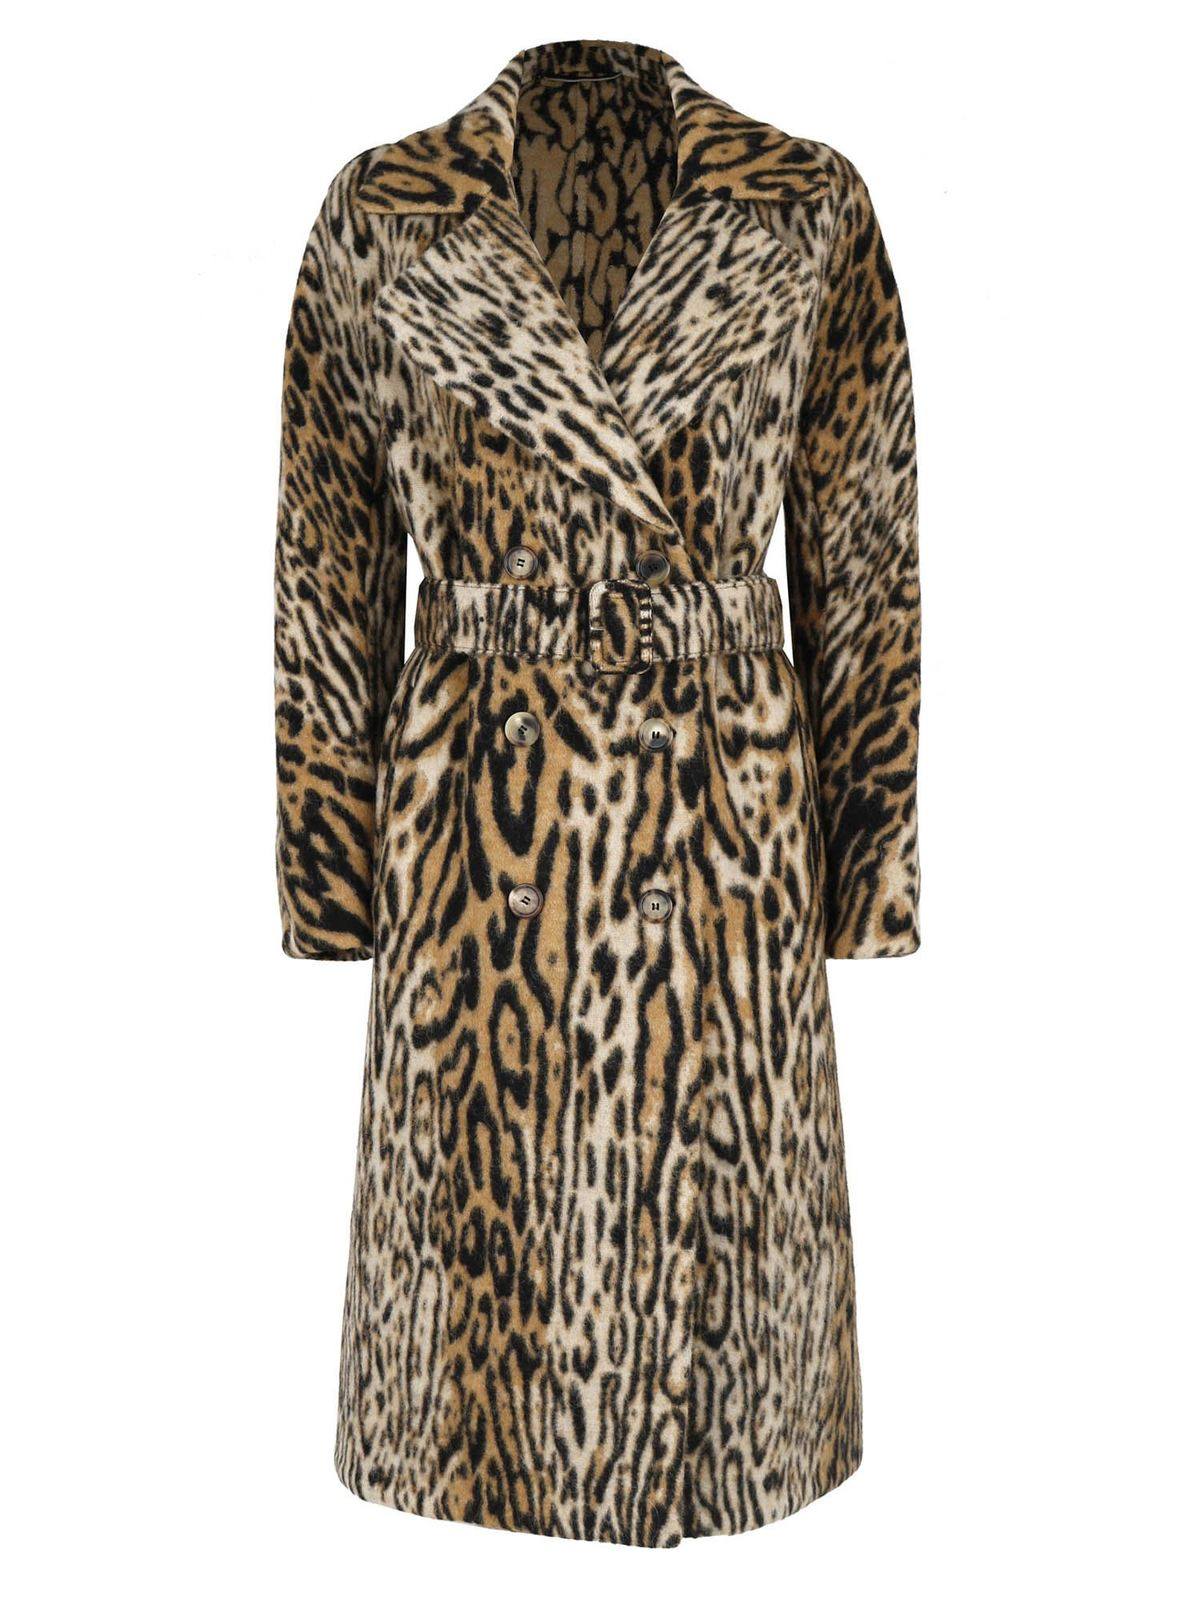 Ermanno Scervino DOUBLE-BREASTED COAT IN ANIMALIER